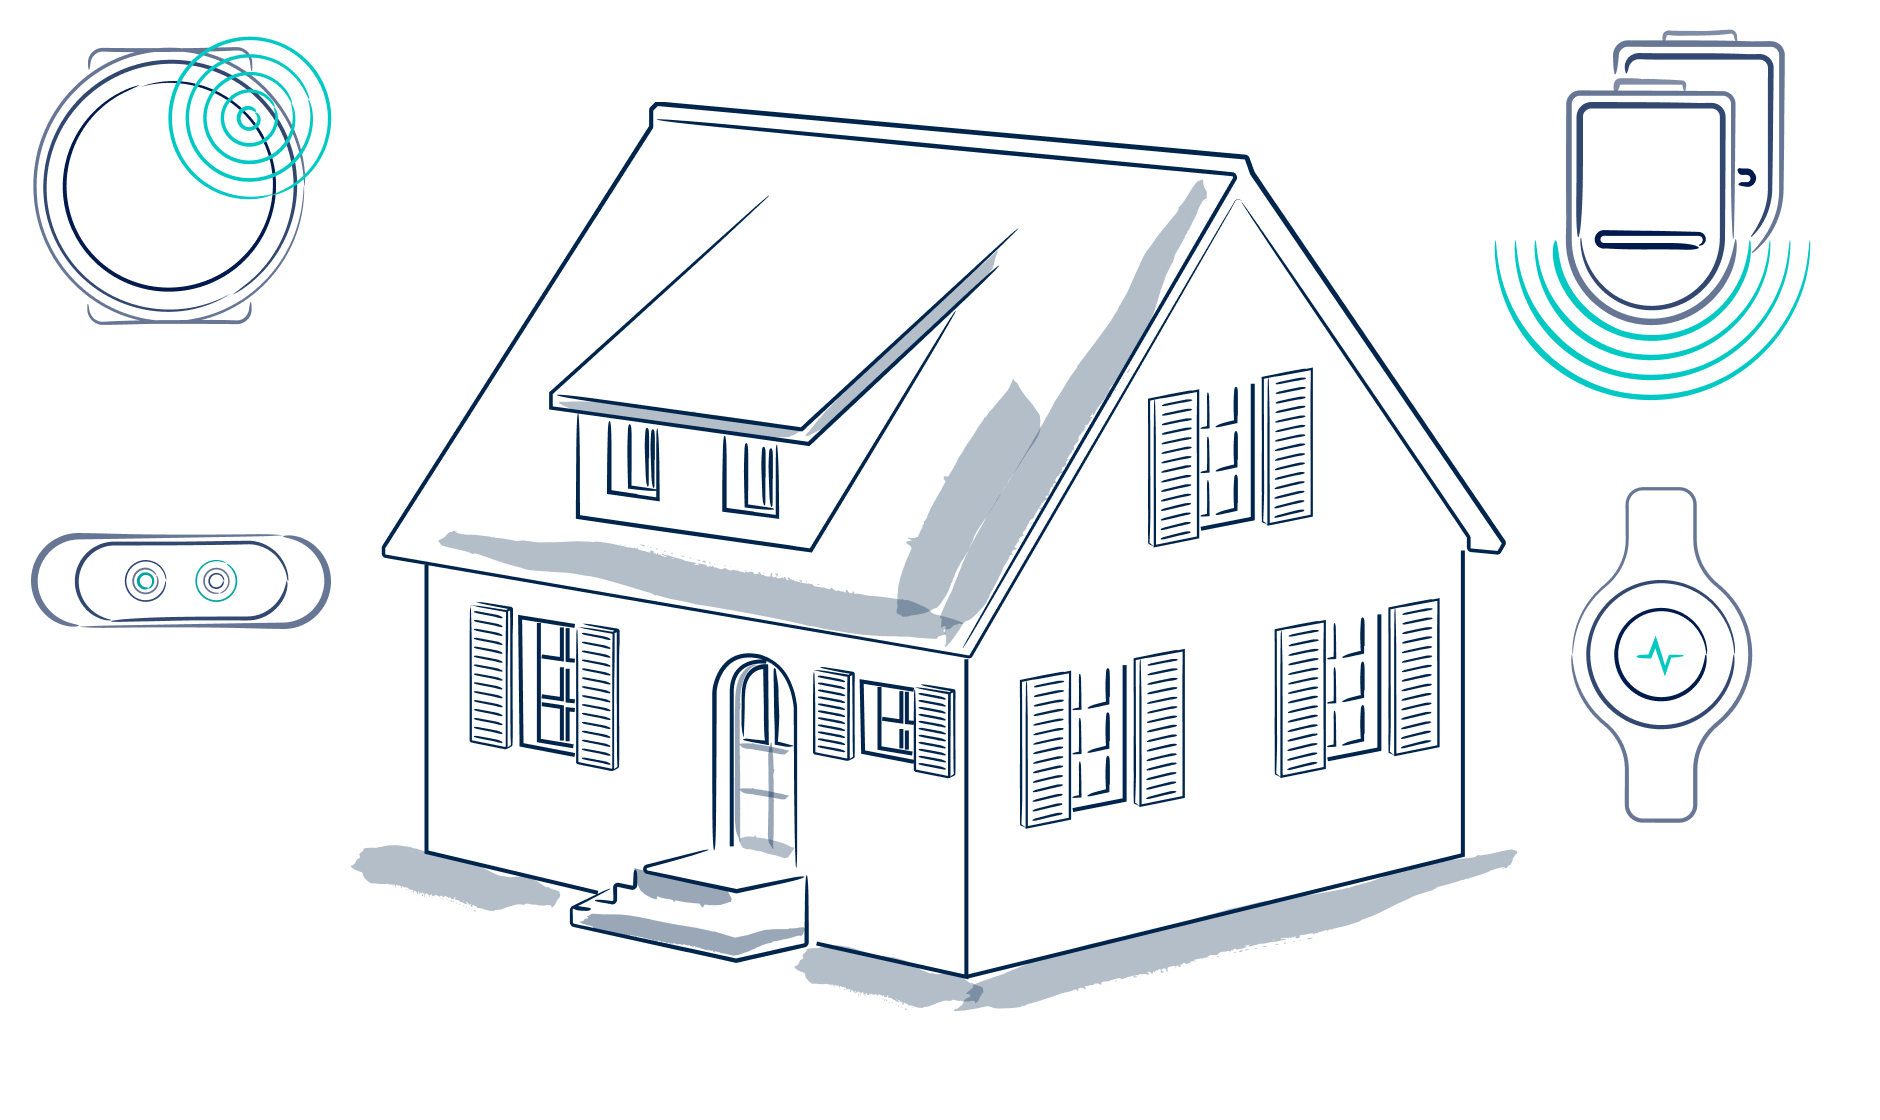 Hand drawn illustration of a detached house with shuttered windows, surrounded by different home sensors including door sensors and wrist watch fall detectors